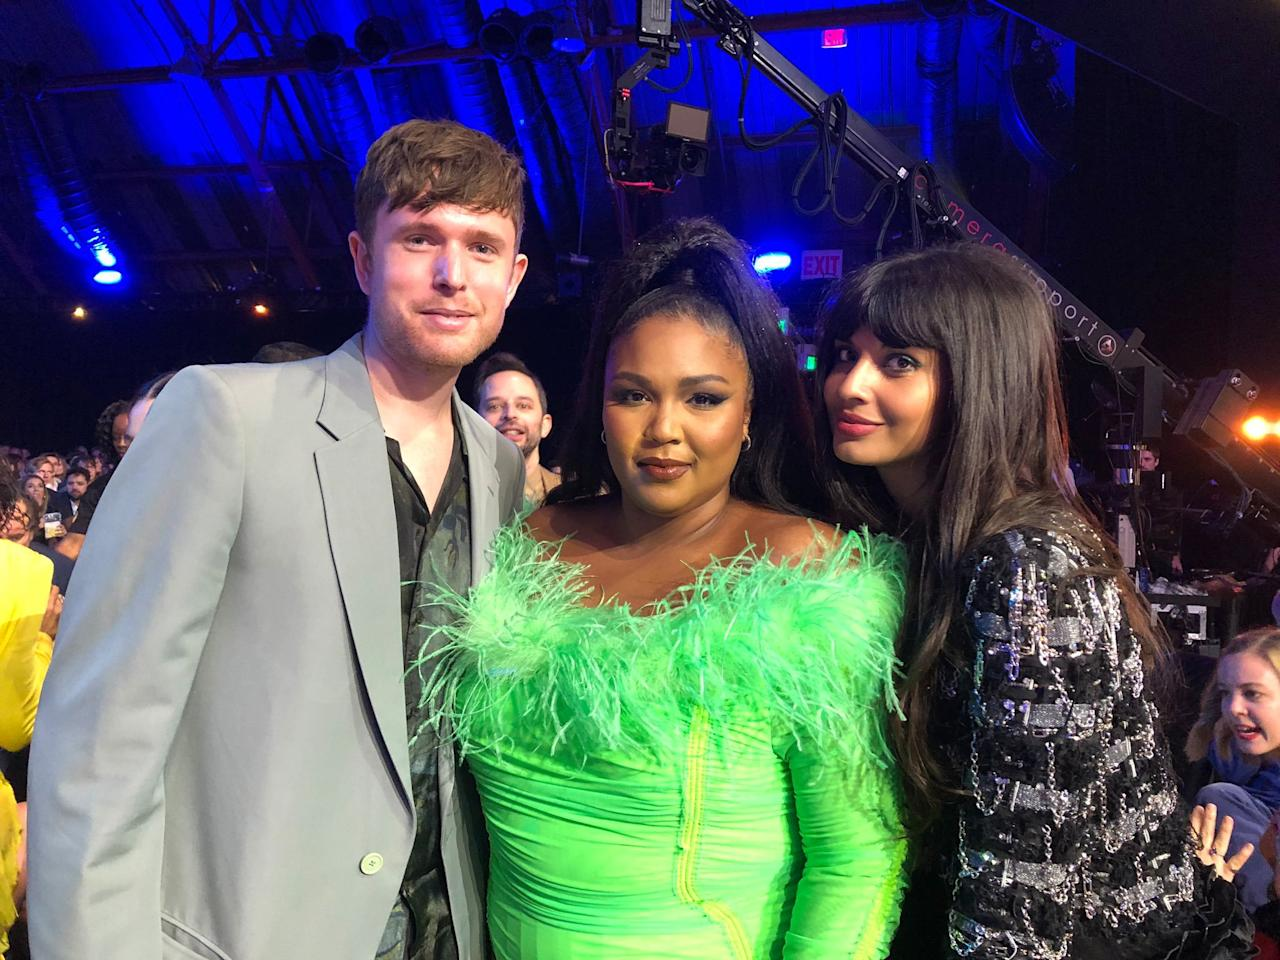 """""""Got to meet the Queen at @MTVAwards @lizzo ❤️ ,"""" the actress <a href=""""https://twitter.com/jameelajamil/status/1140076269830209536?s=20"""">tweeted</a>, along with this photo of her and her boyfriend James Blake posing with the star."""